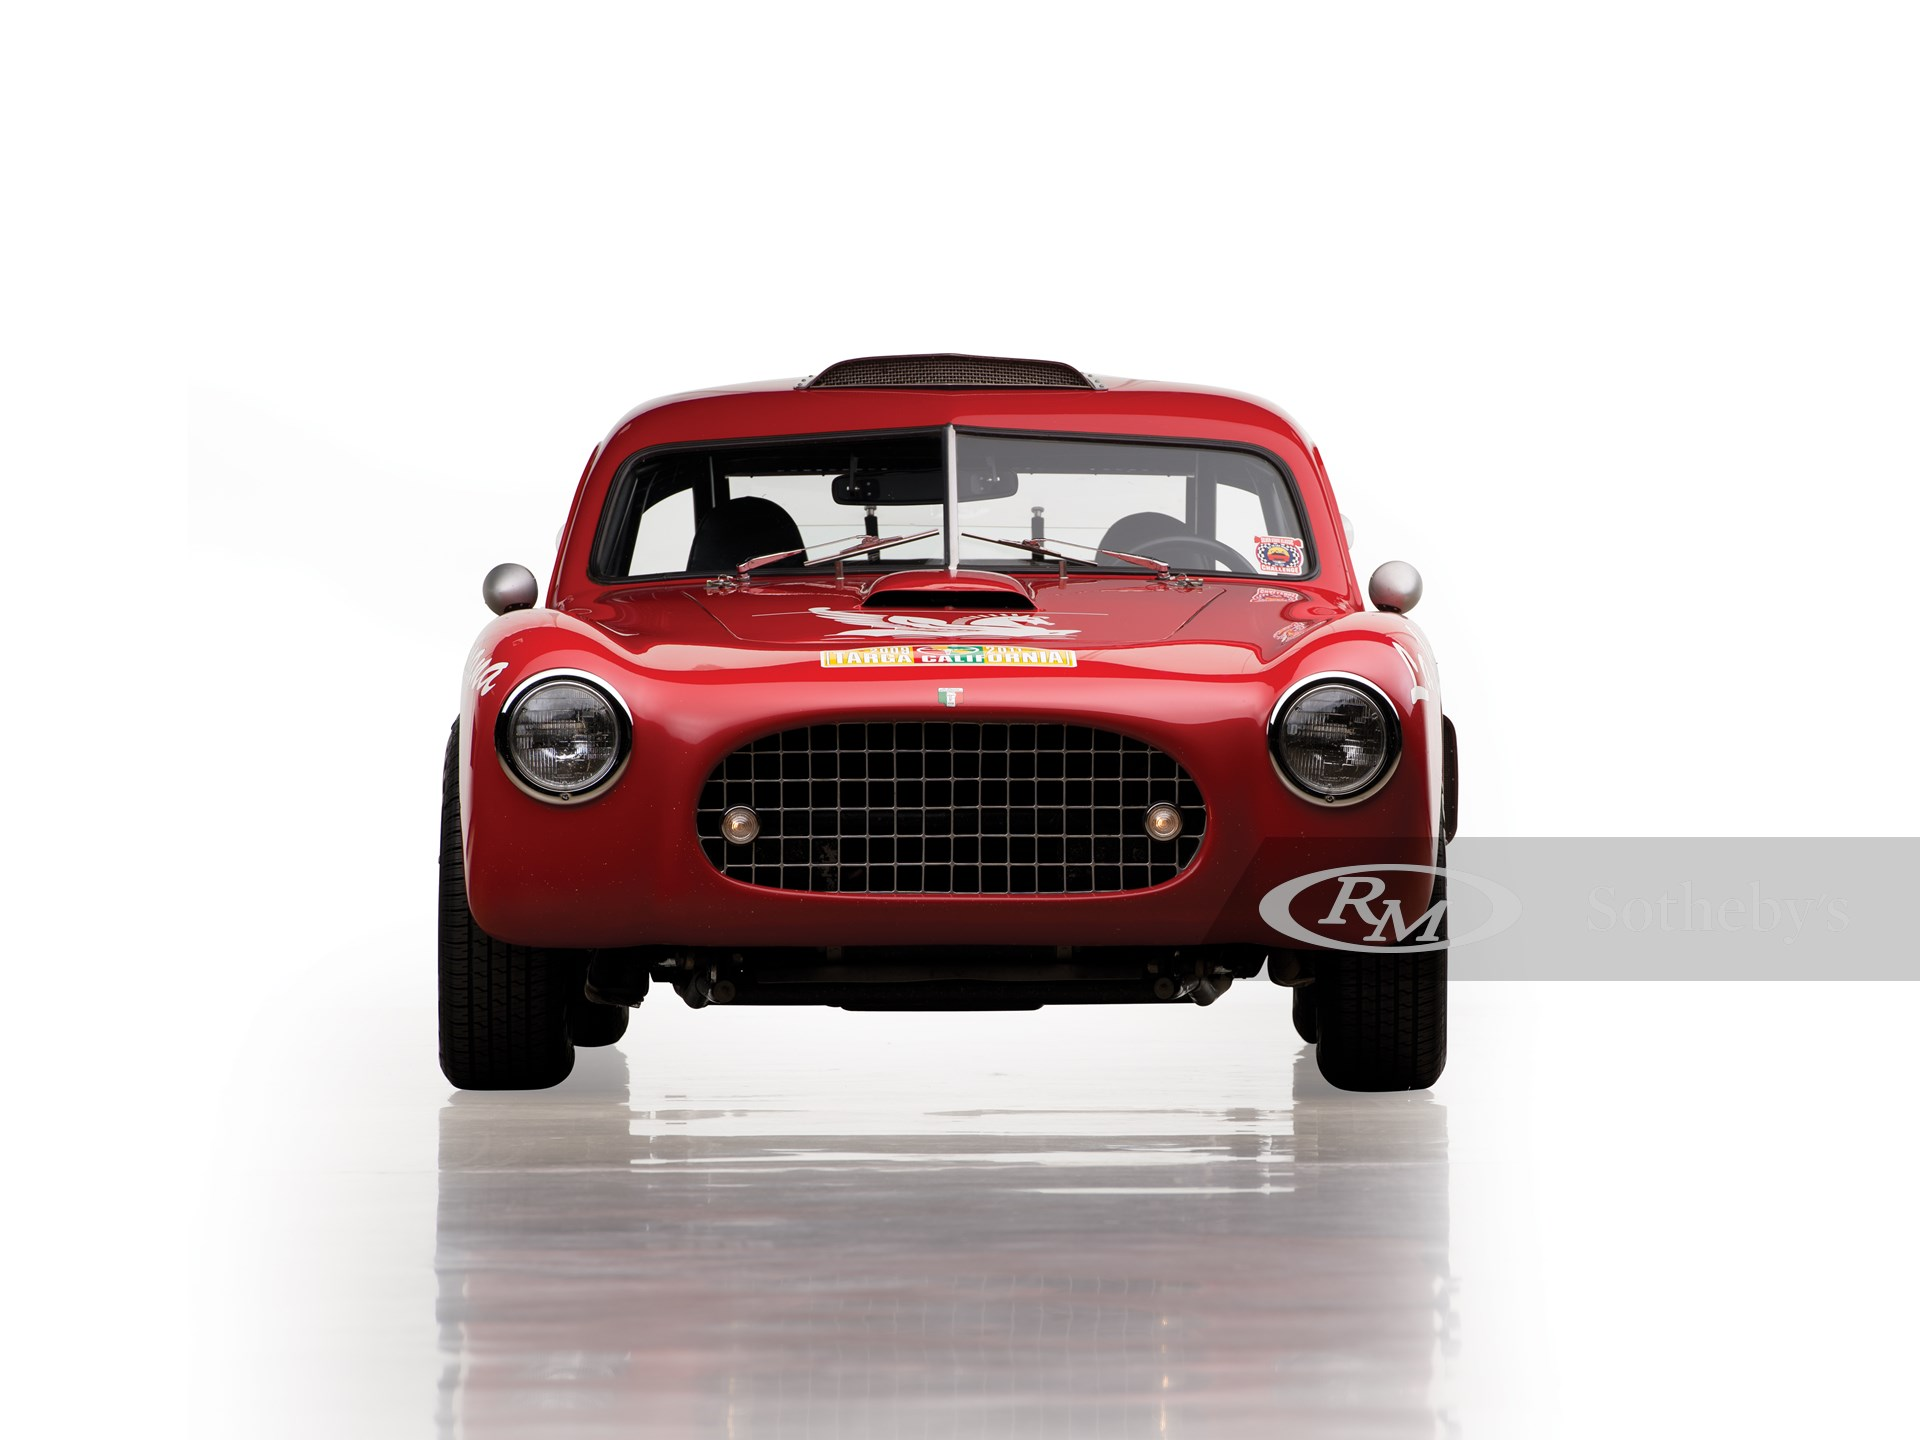 1955 Kurtis 500 Swallow Coupe by Allied -